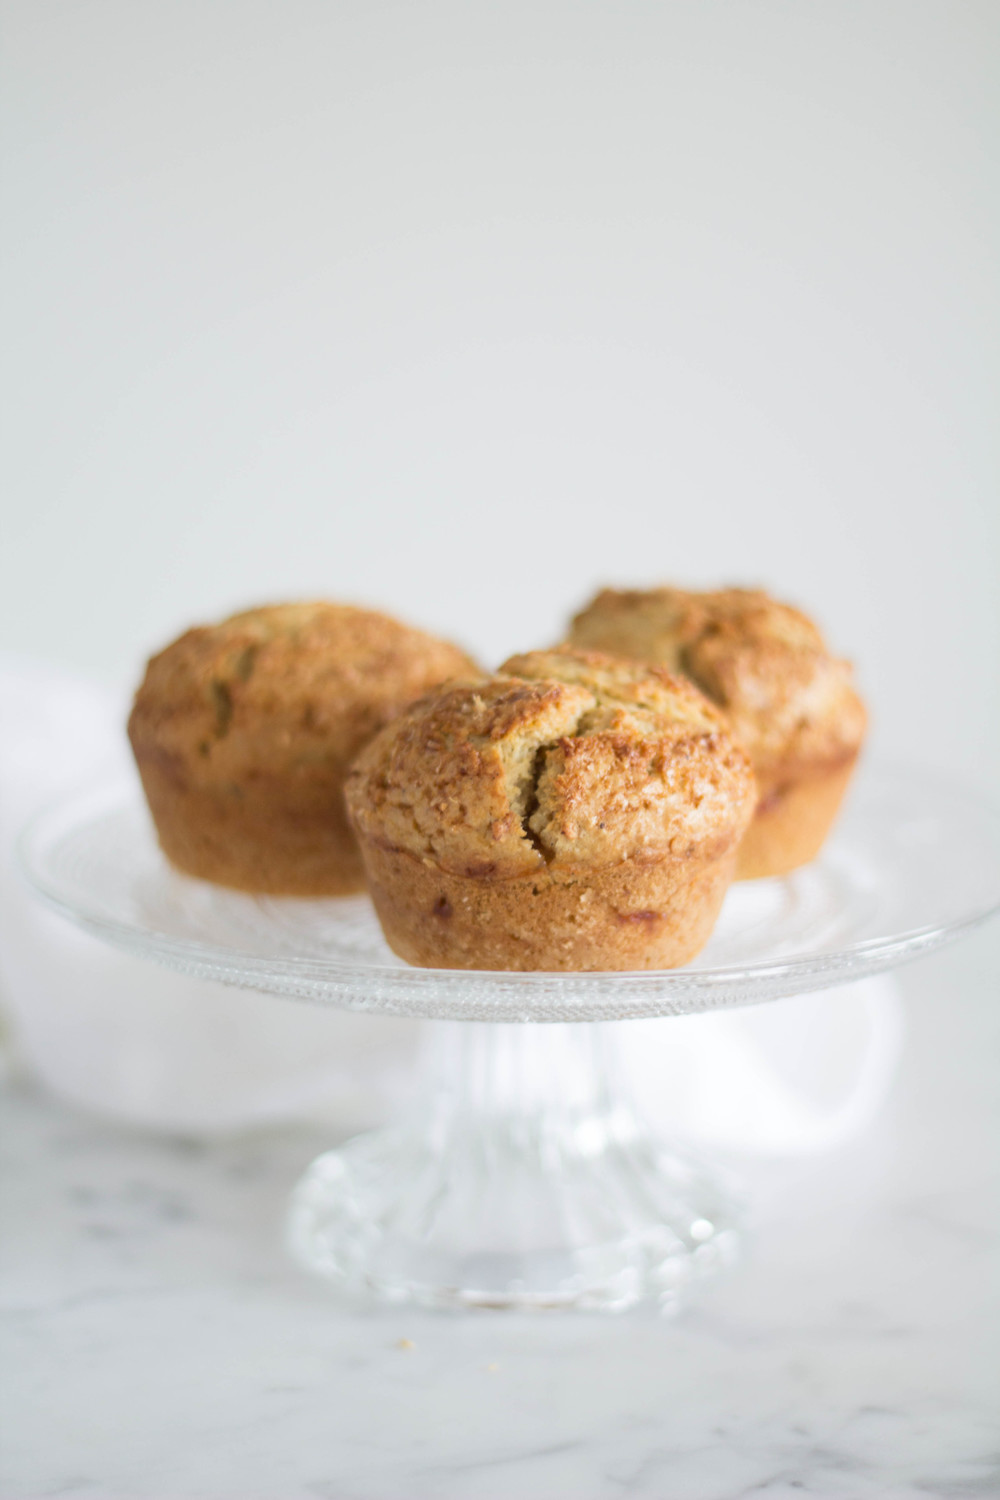 orange and quince muffins www.letstalkevergreen.com